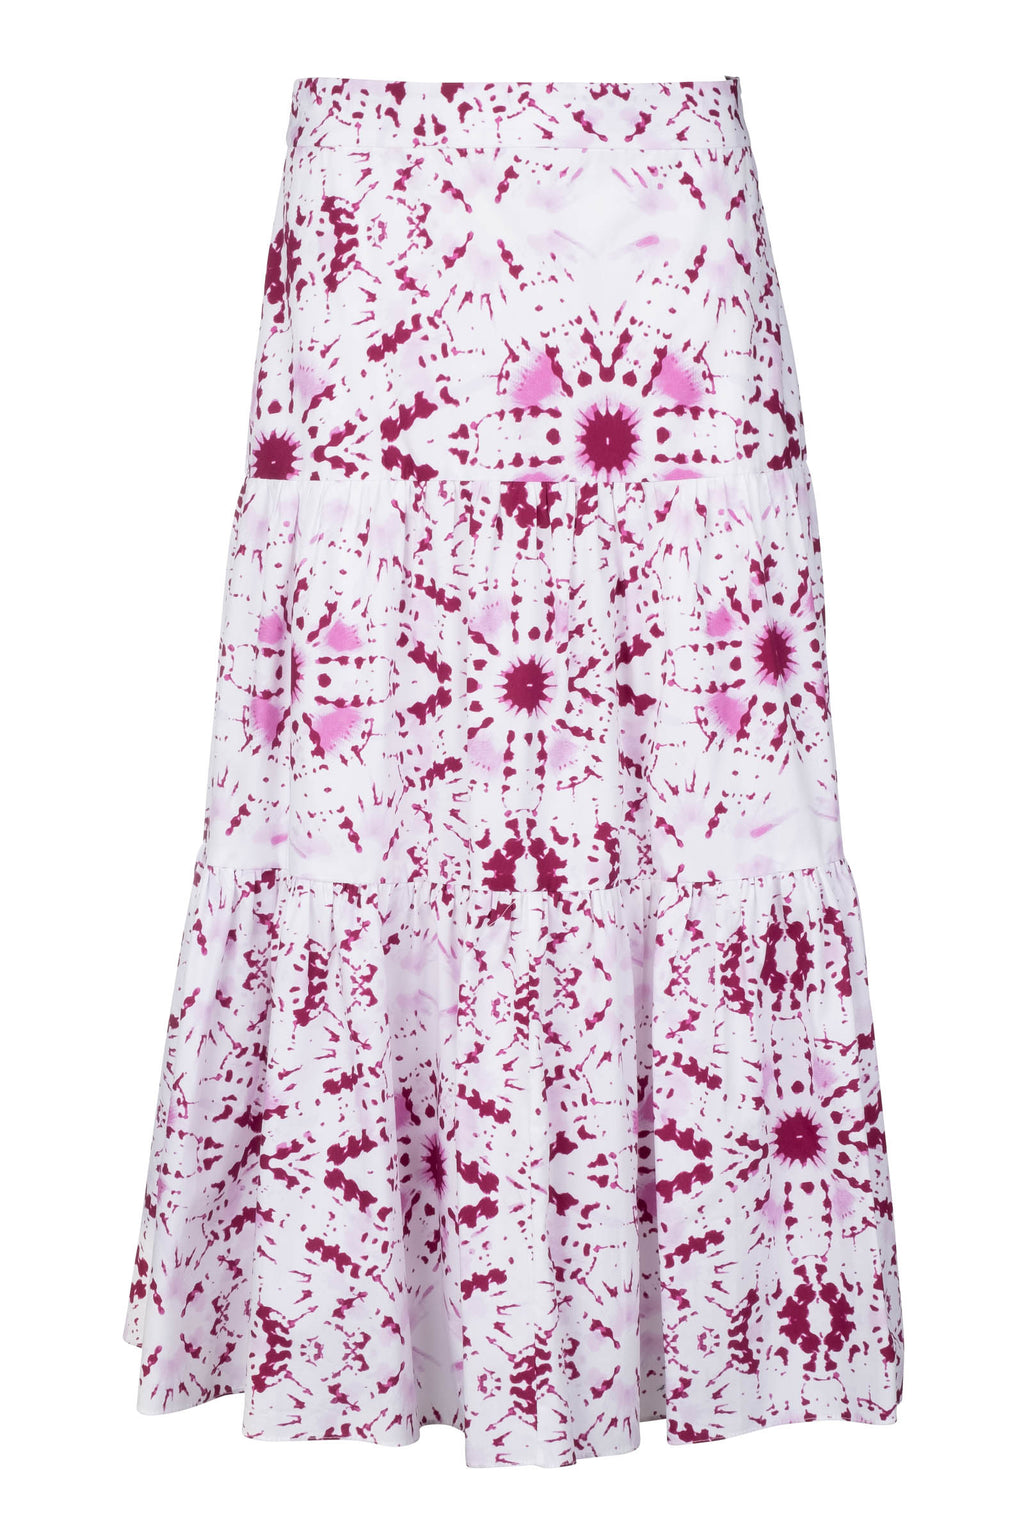 Tiered Midi Skirt - Pink Tie Dye